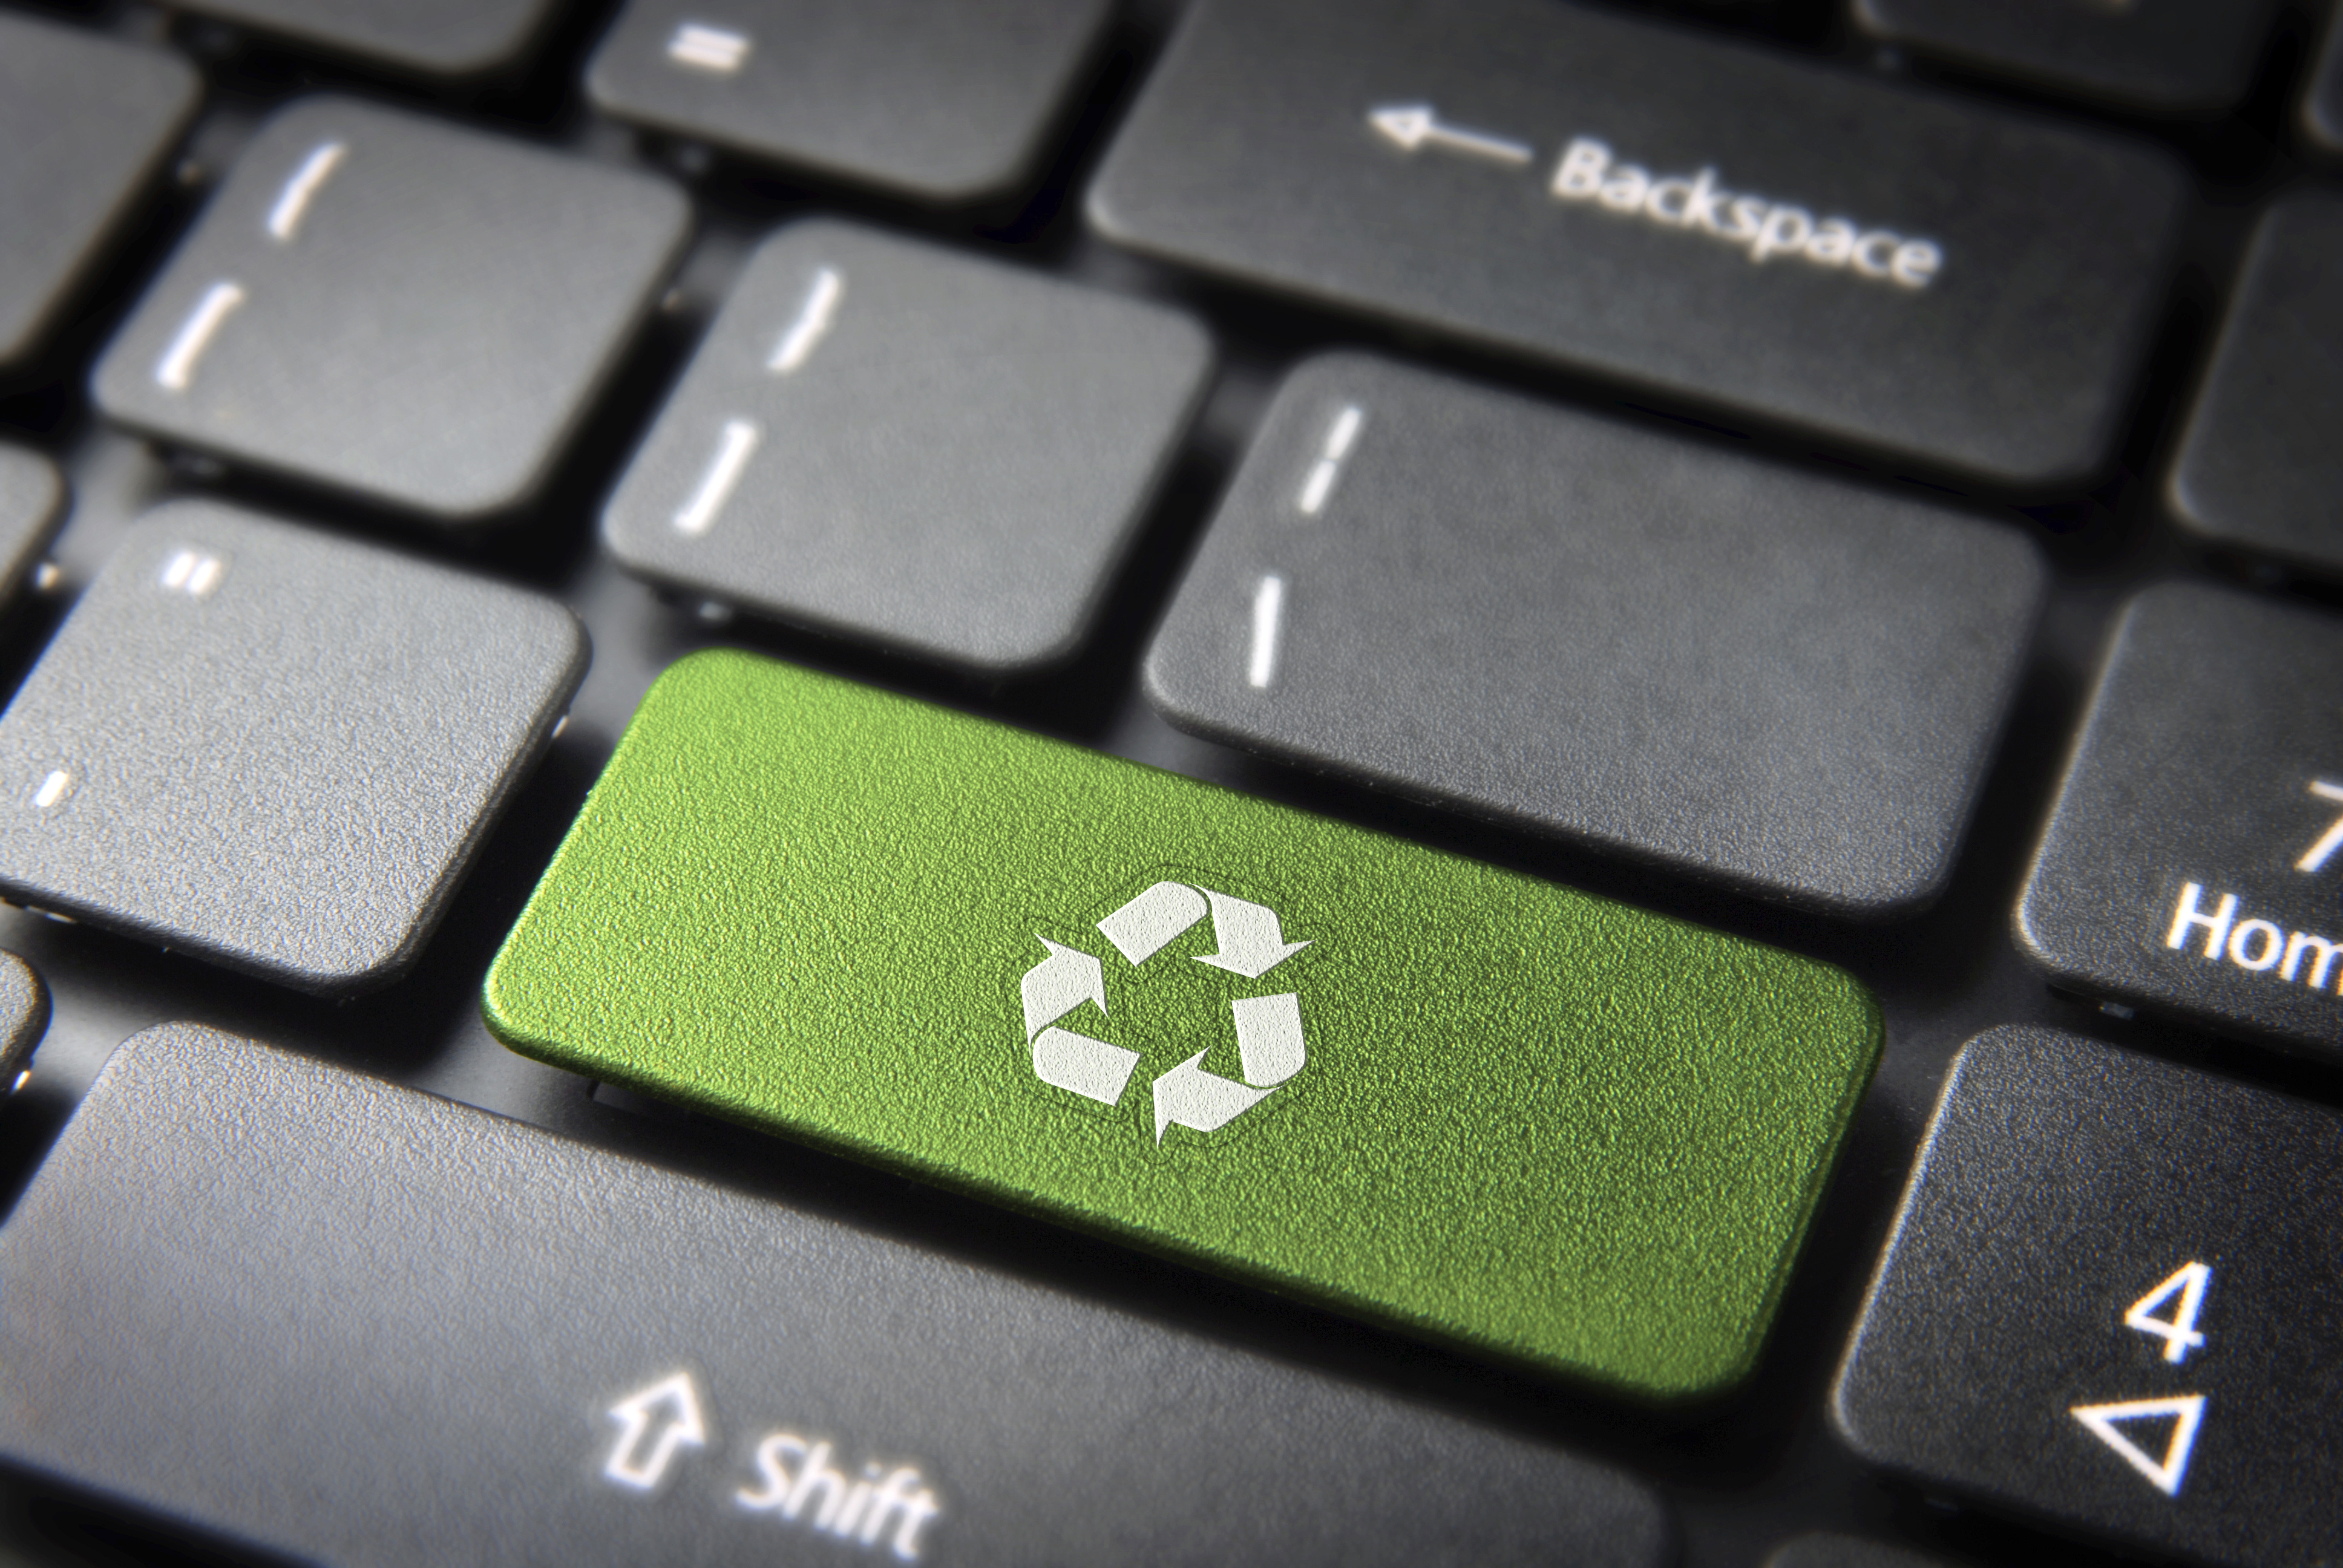 PCSP is happy to recycle your used IT hardware